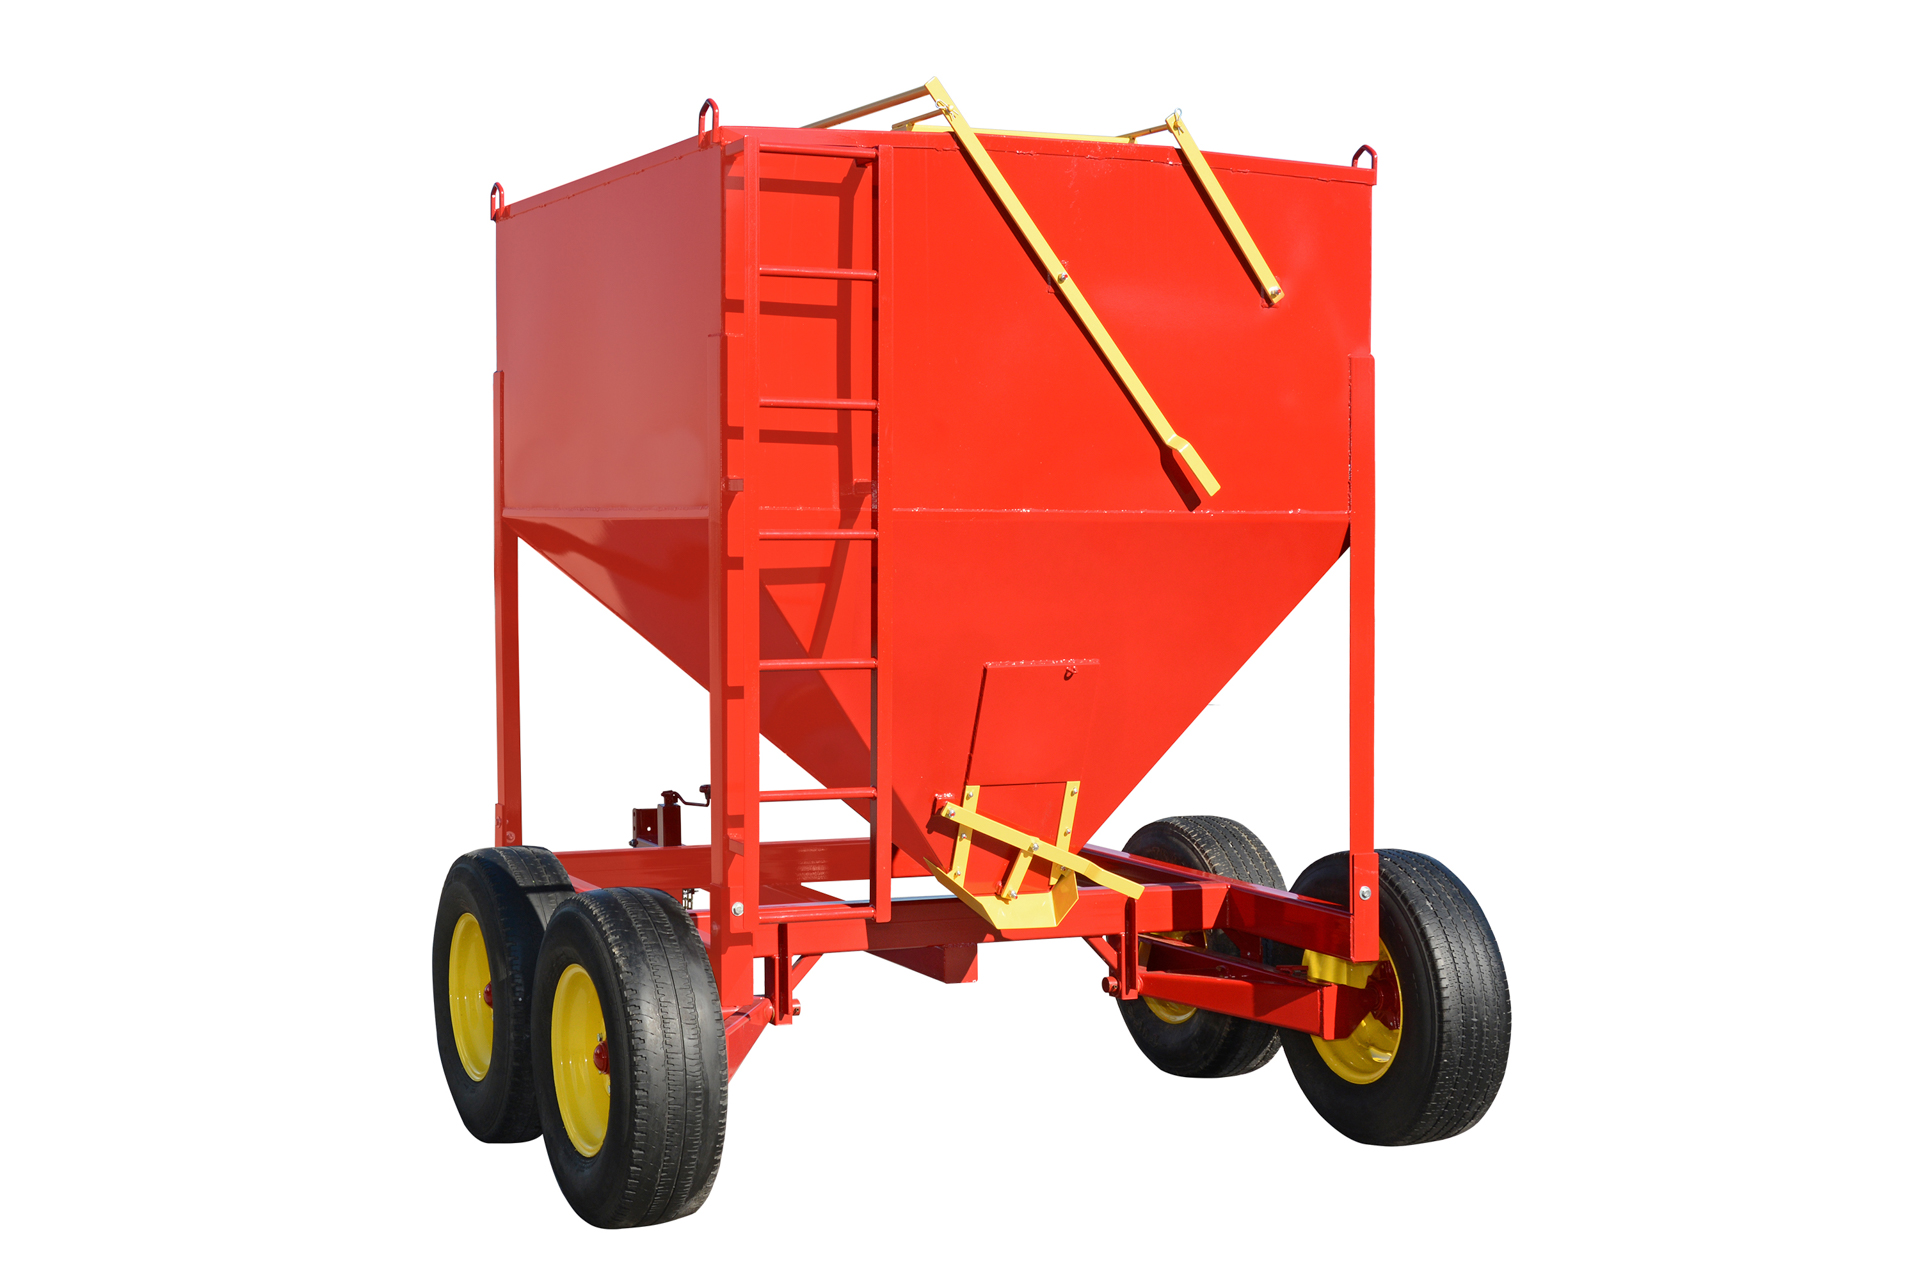 portable grain bin to prevent mycotoxins